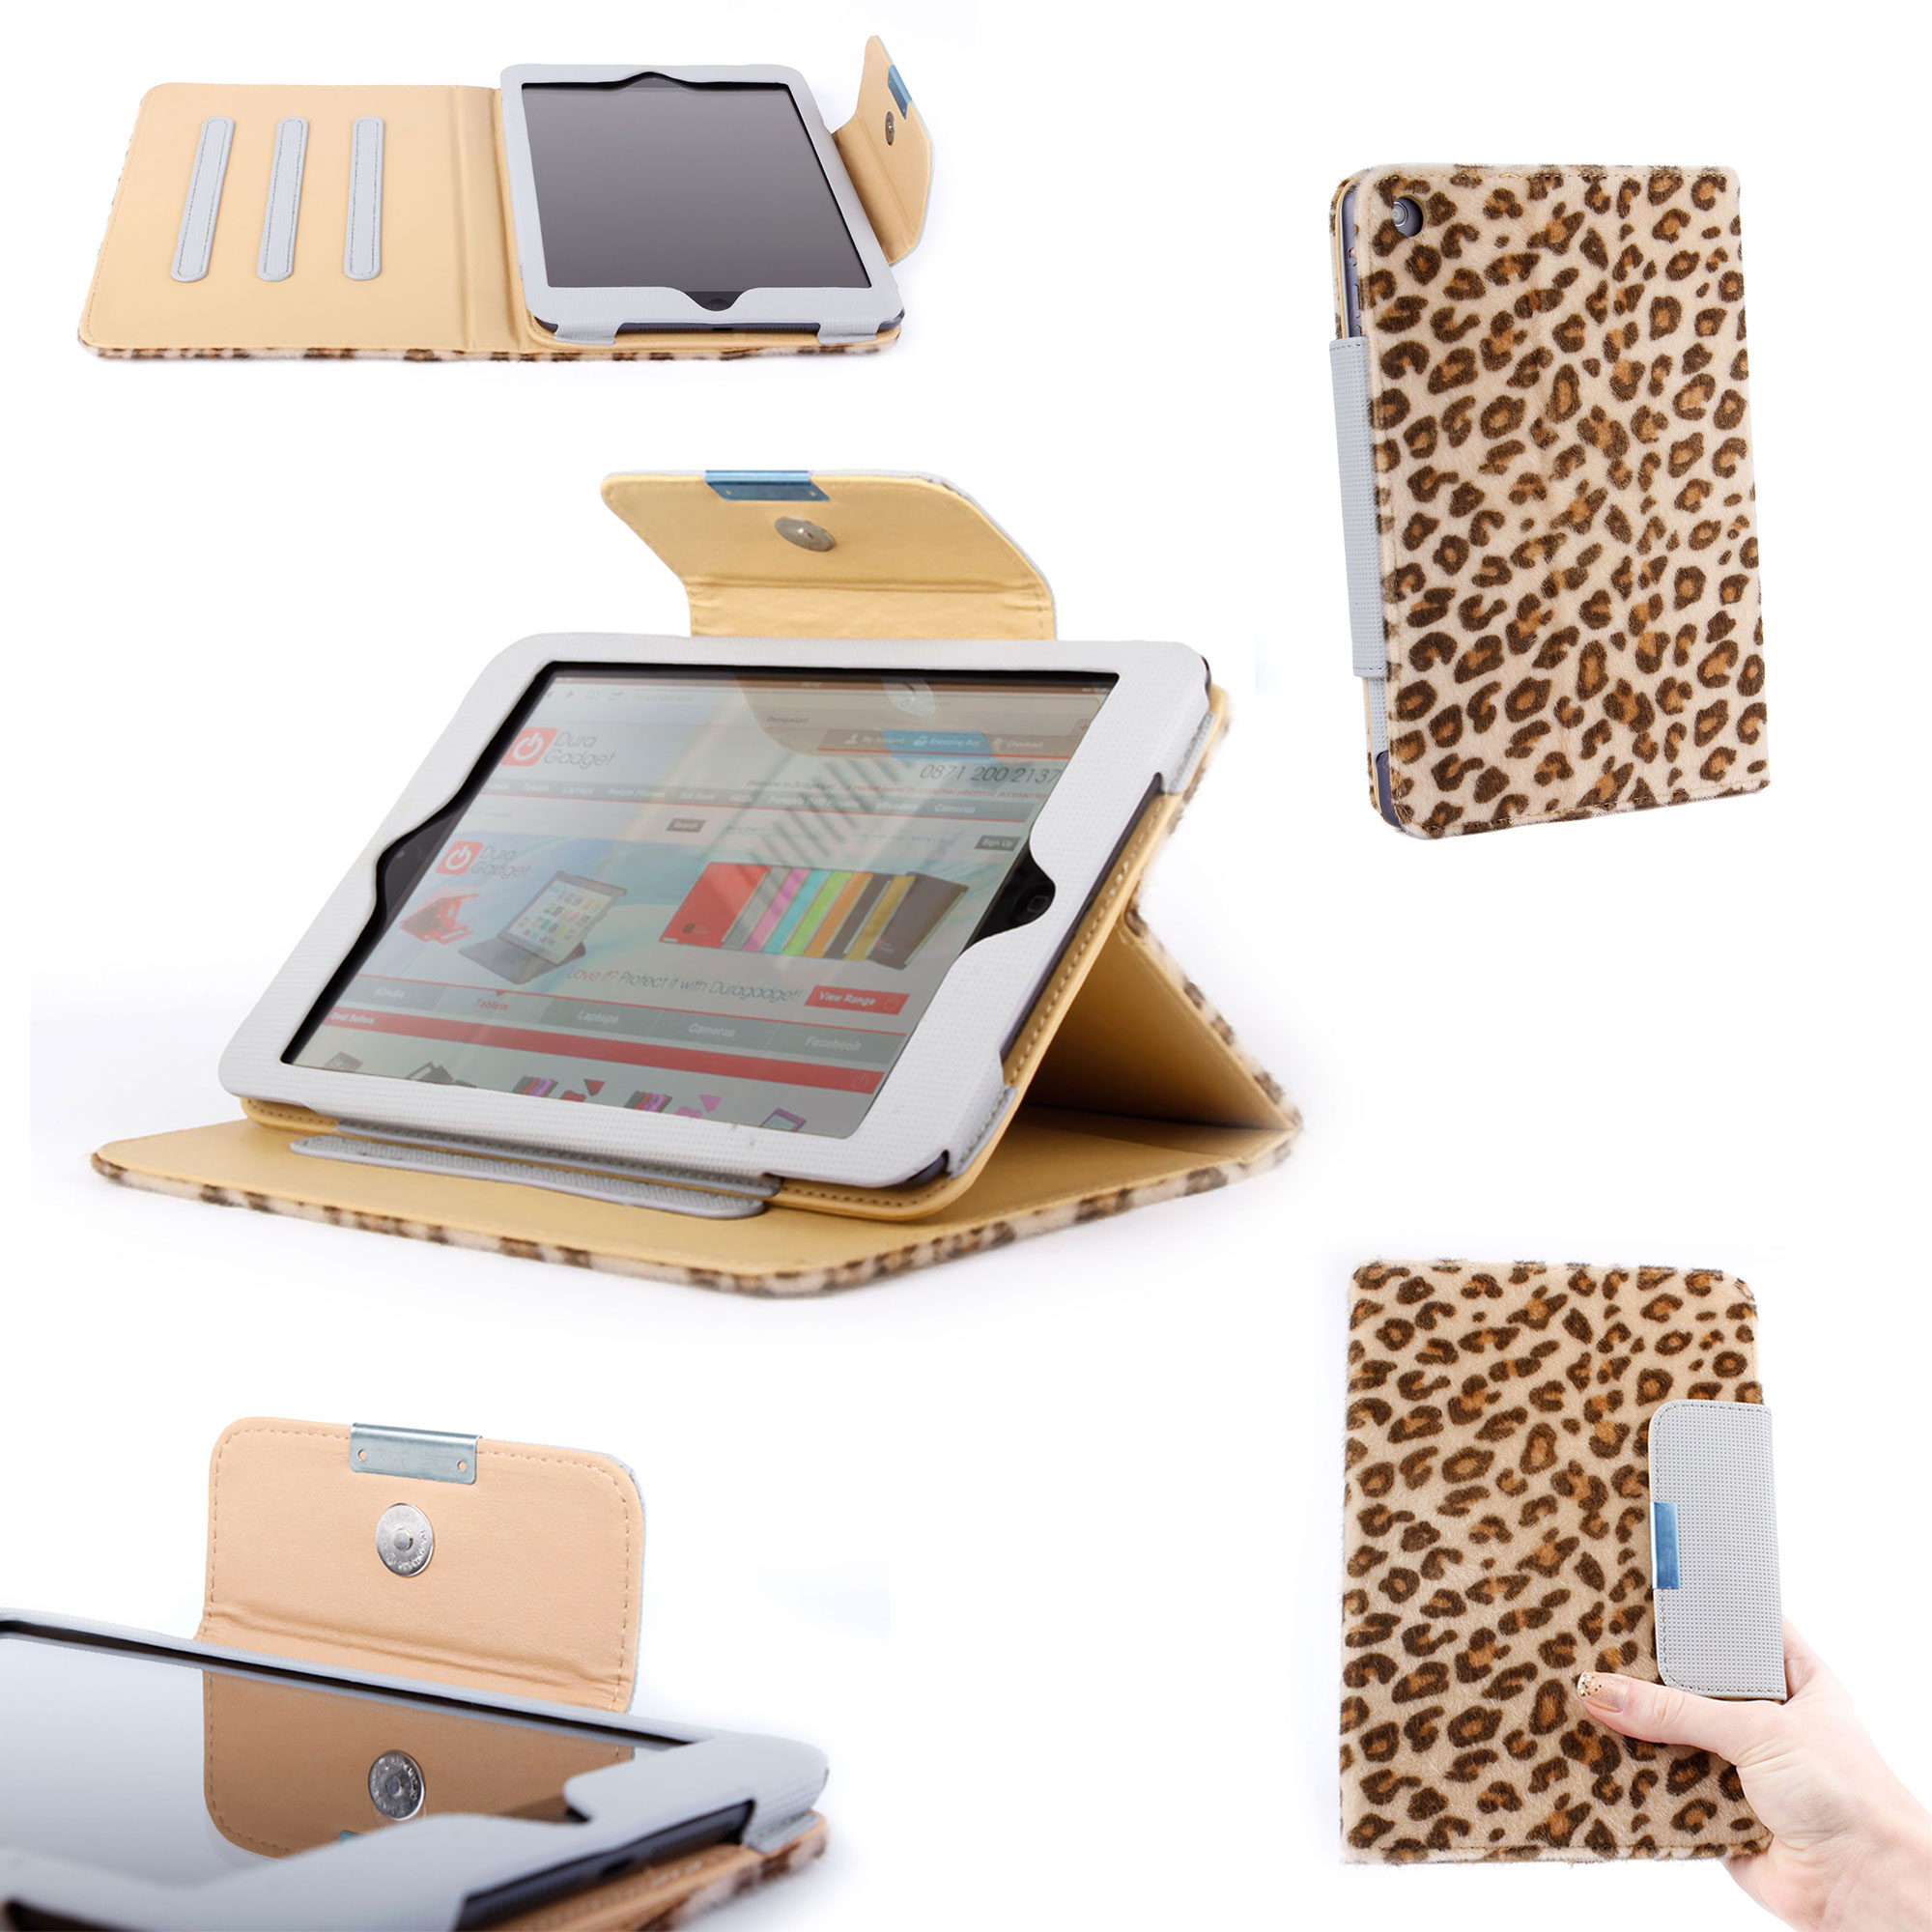 Apple iPad Mini Custom Fluffy Leopard Print Case w/ Safe Lock &amp; Adjustable Stand Preview